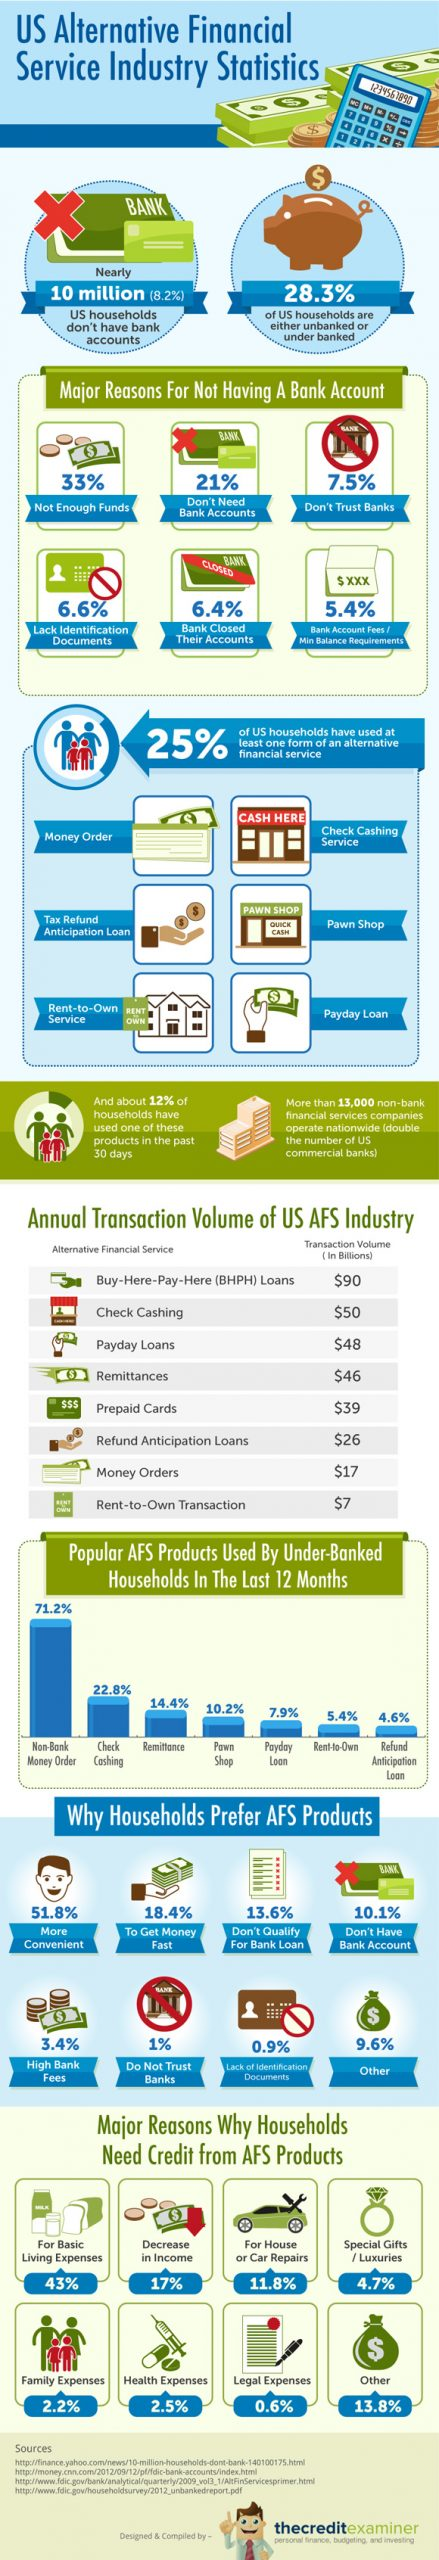 US Alternative Financial Services Usage (Infographic)